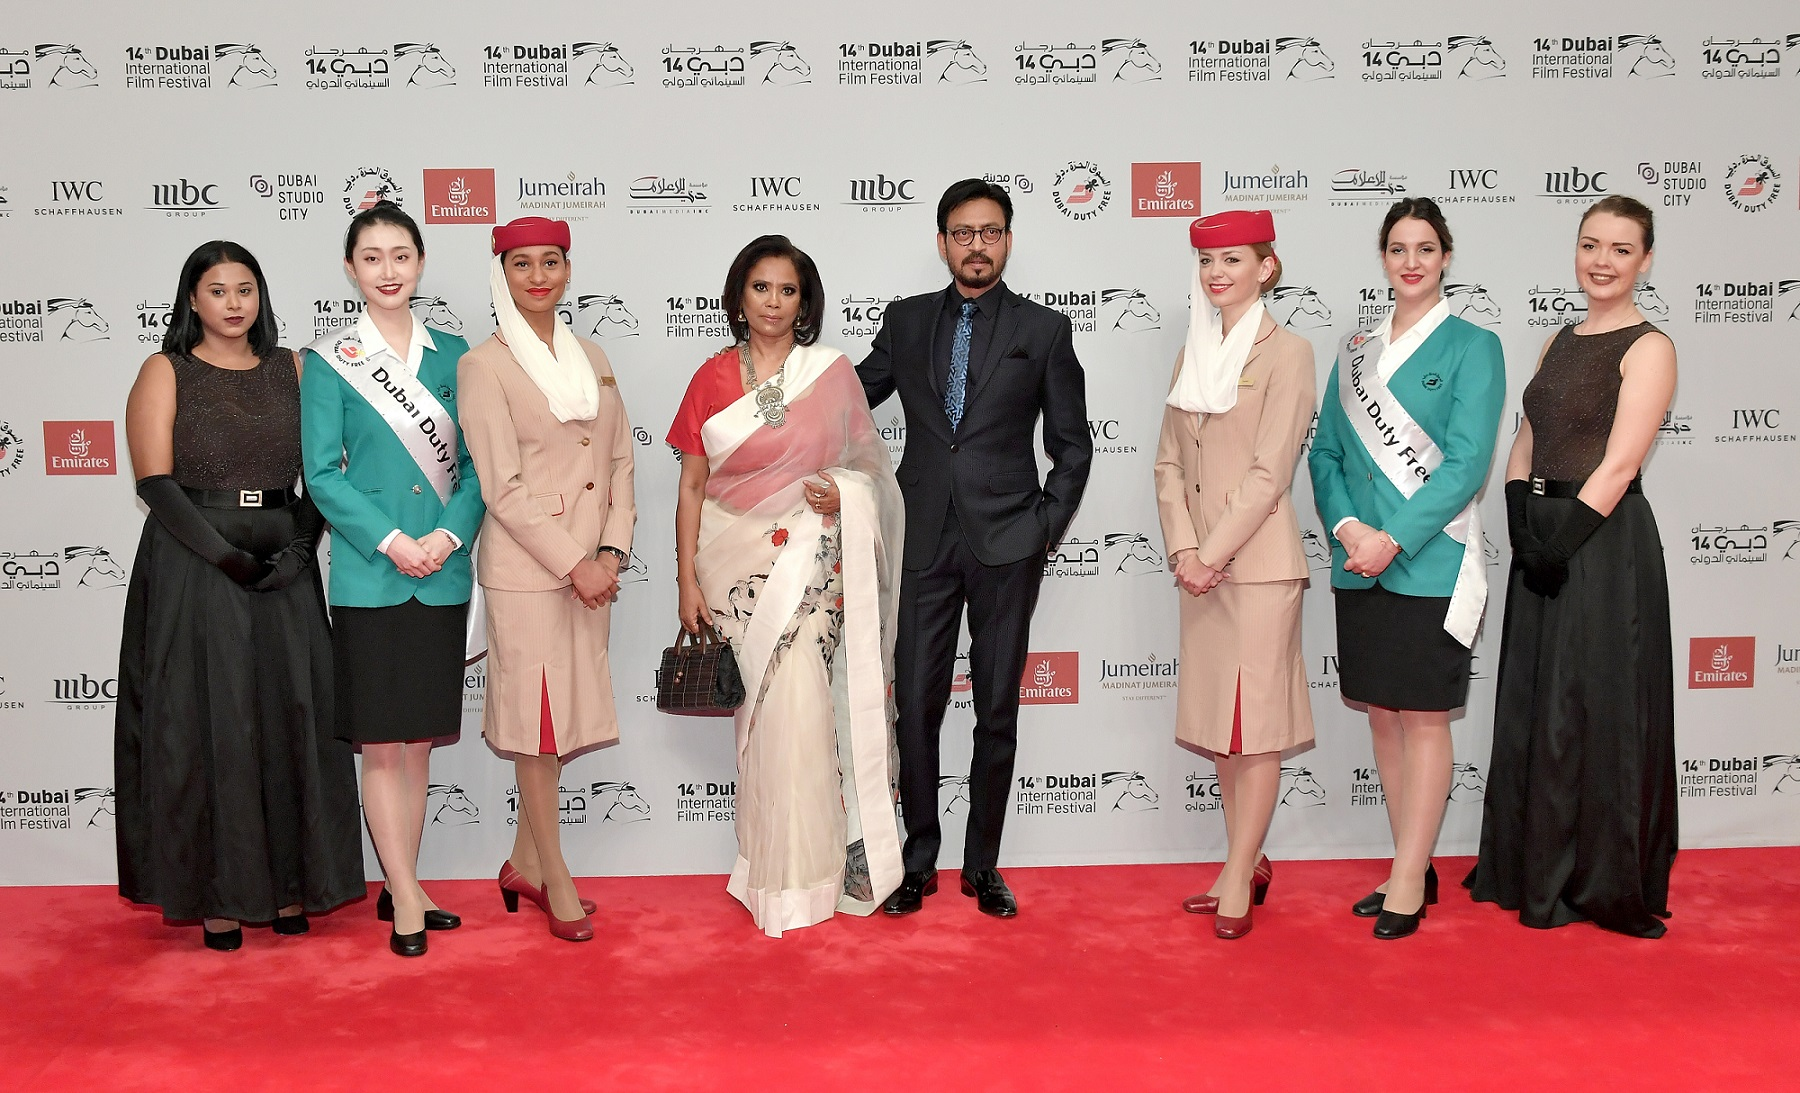 Indian actor Irrfan Khan graced the red carpet during the opening of Dubai International Film Festival.